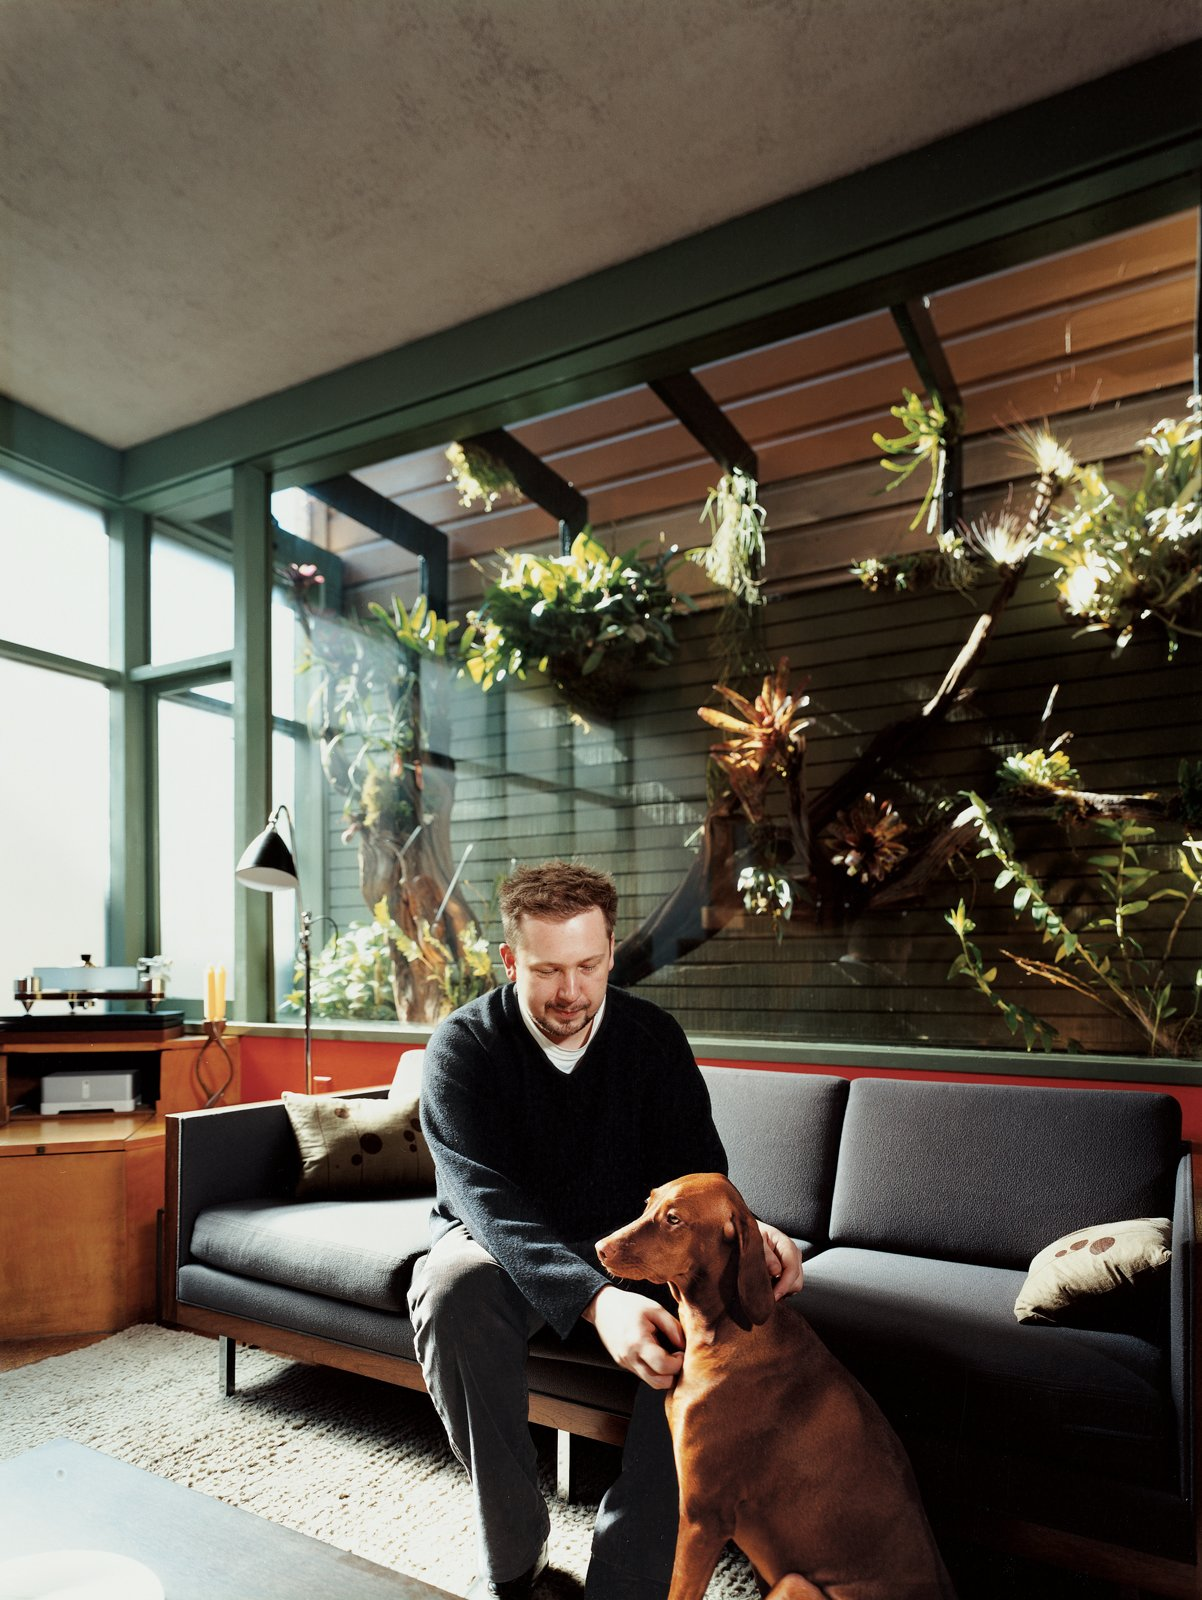 Farnham and Kasia sit in front of the home's most impressive feature: an enclosed atrium overlooking the living area. In 2007, Dale Loughins outfitted the atrium with all manner of exotic epiphytes and an automated misting system. Tagged: Living Room and Sofa. Mid-Century Mash-Up - Photo 3 of 14